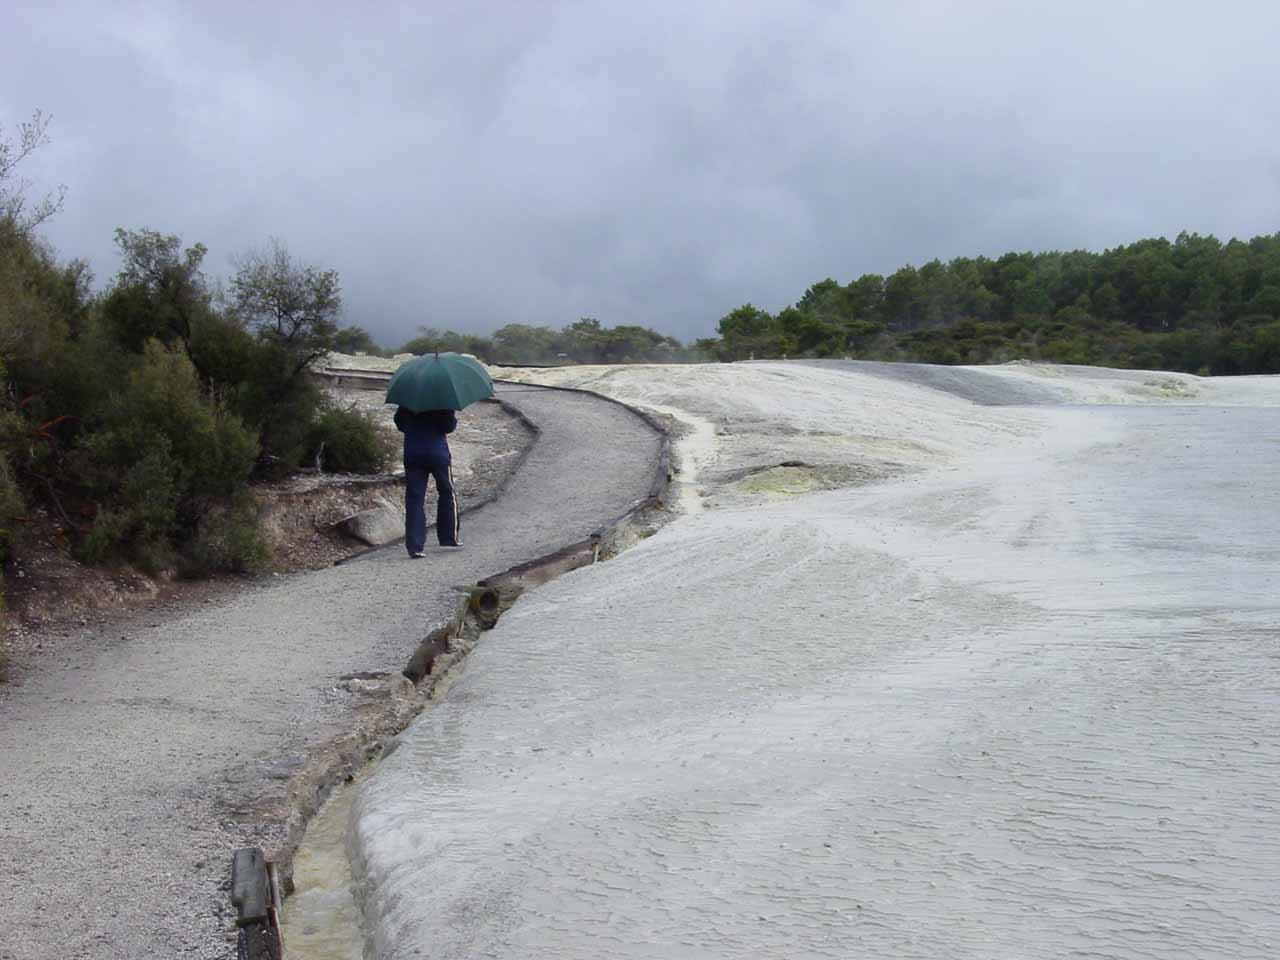 Quickly making our way across the thermal wonderland towards Lady Knox Geyser